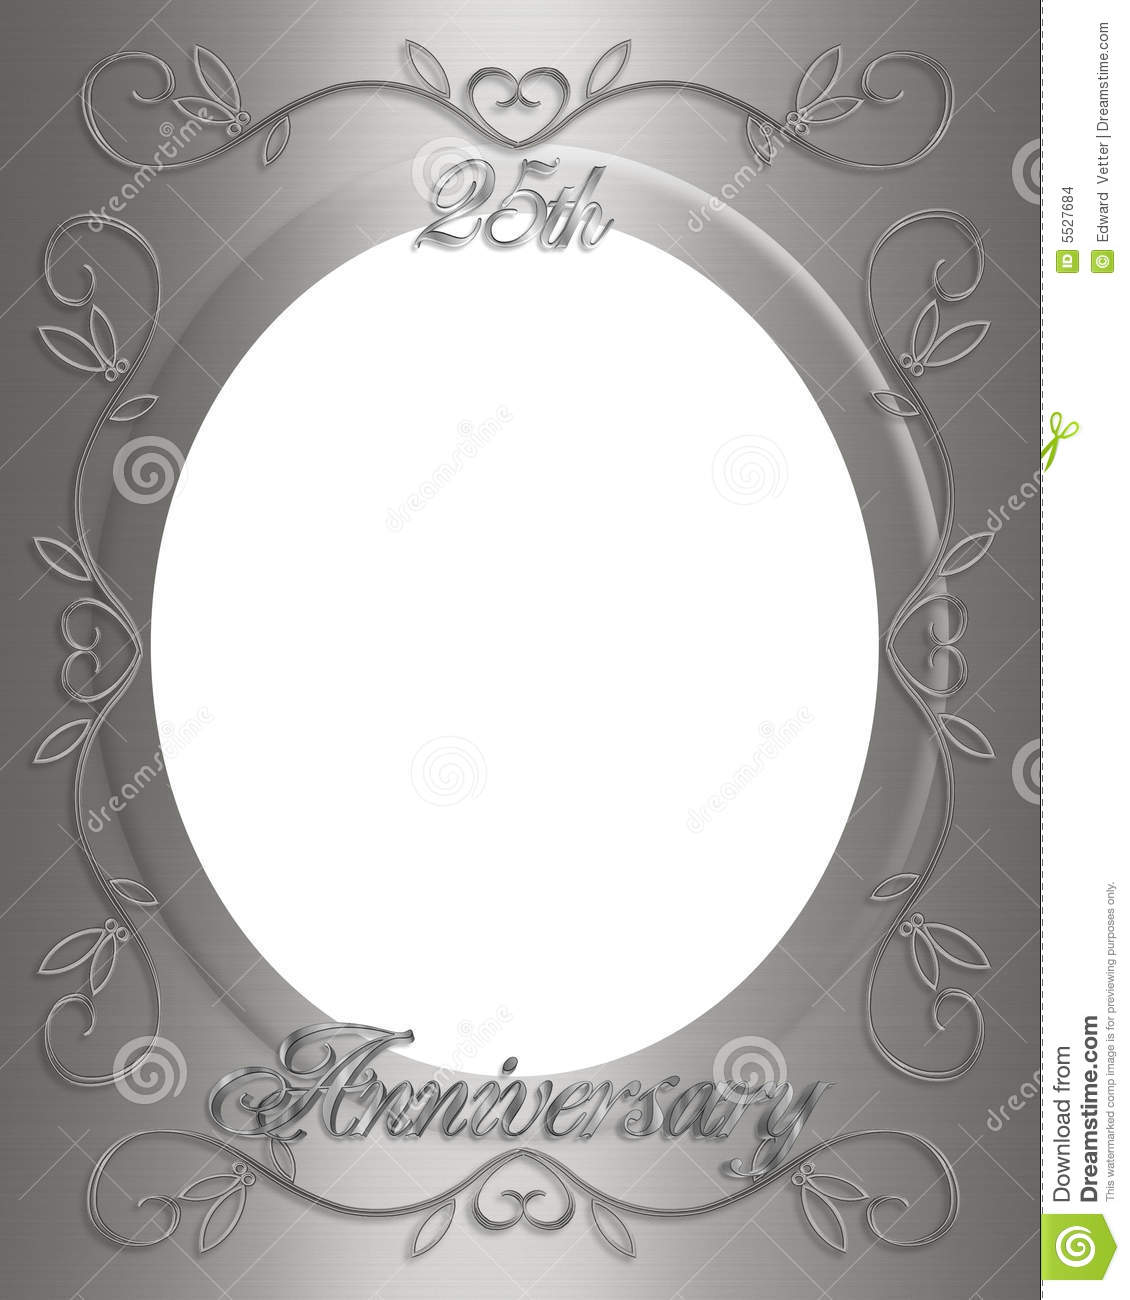 25th Wedding Anniversary Frame Stock Illustration Illustration Of